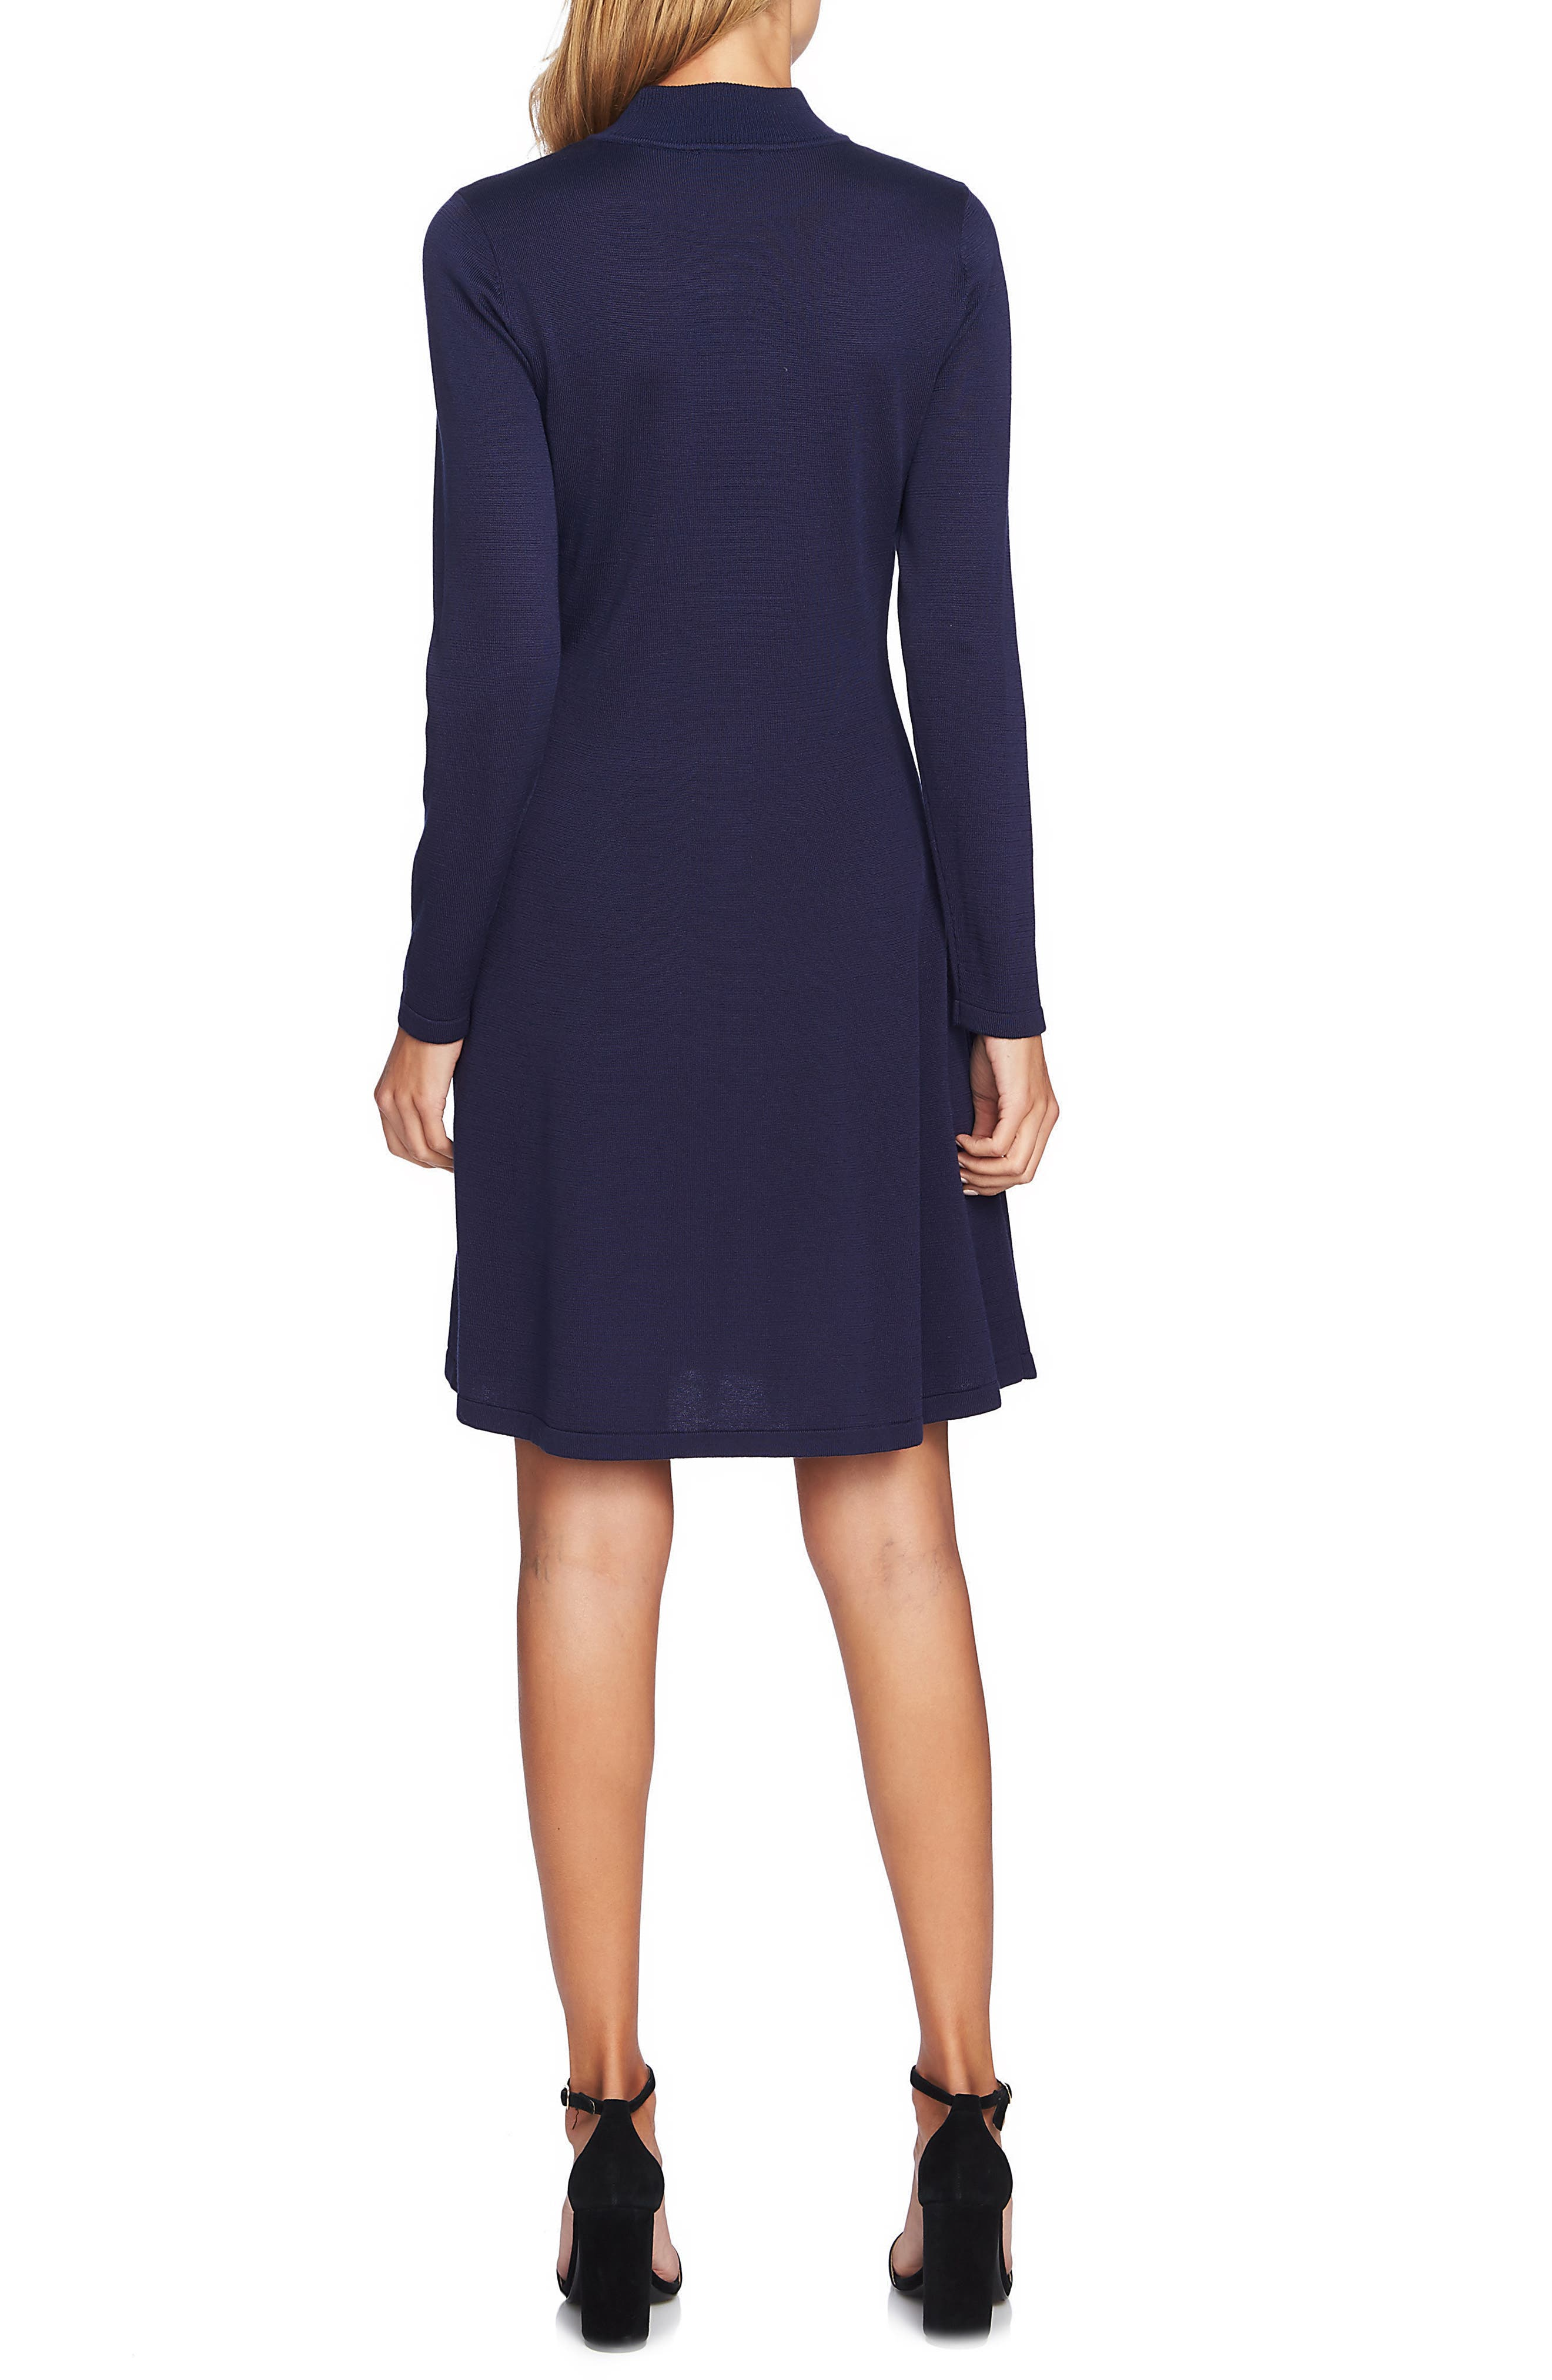 Embellished Sweater Dress,                             Alternate thumbnail 2, color,                             MIDNIGHT BLOOM